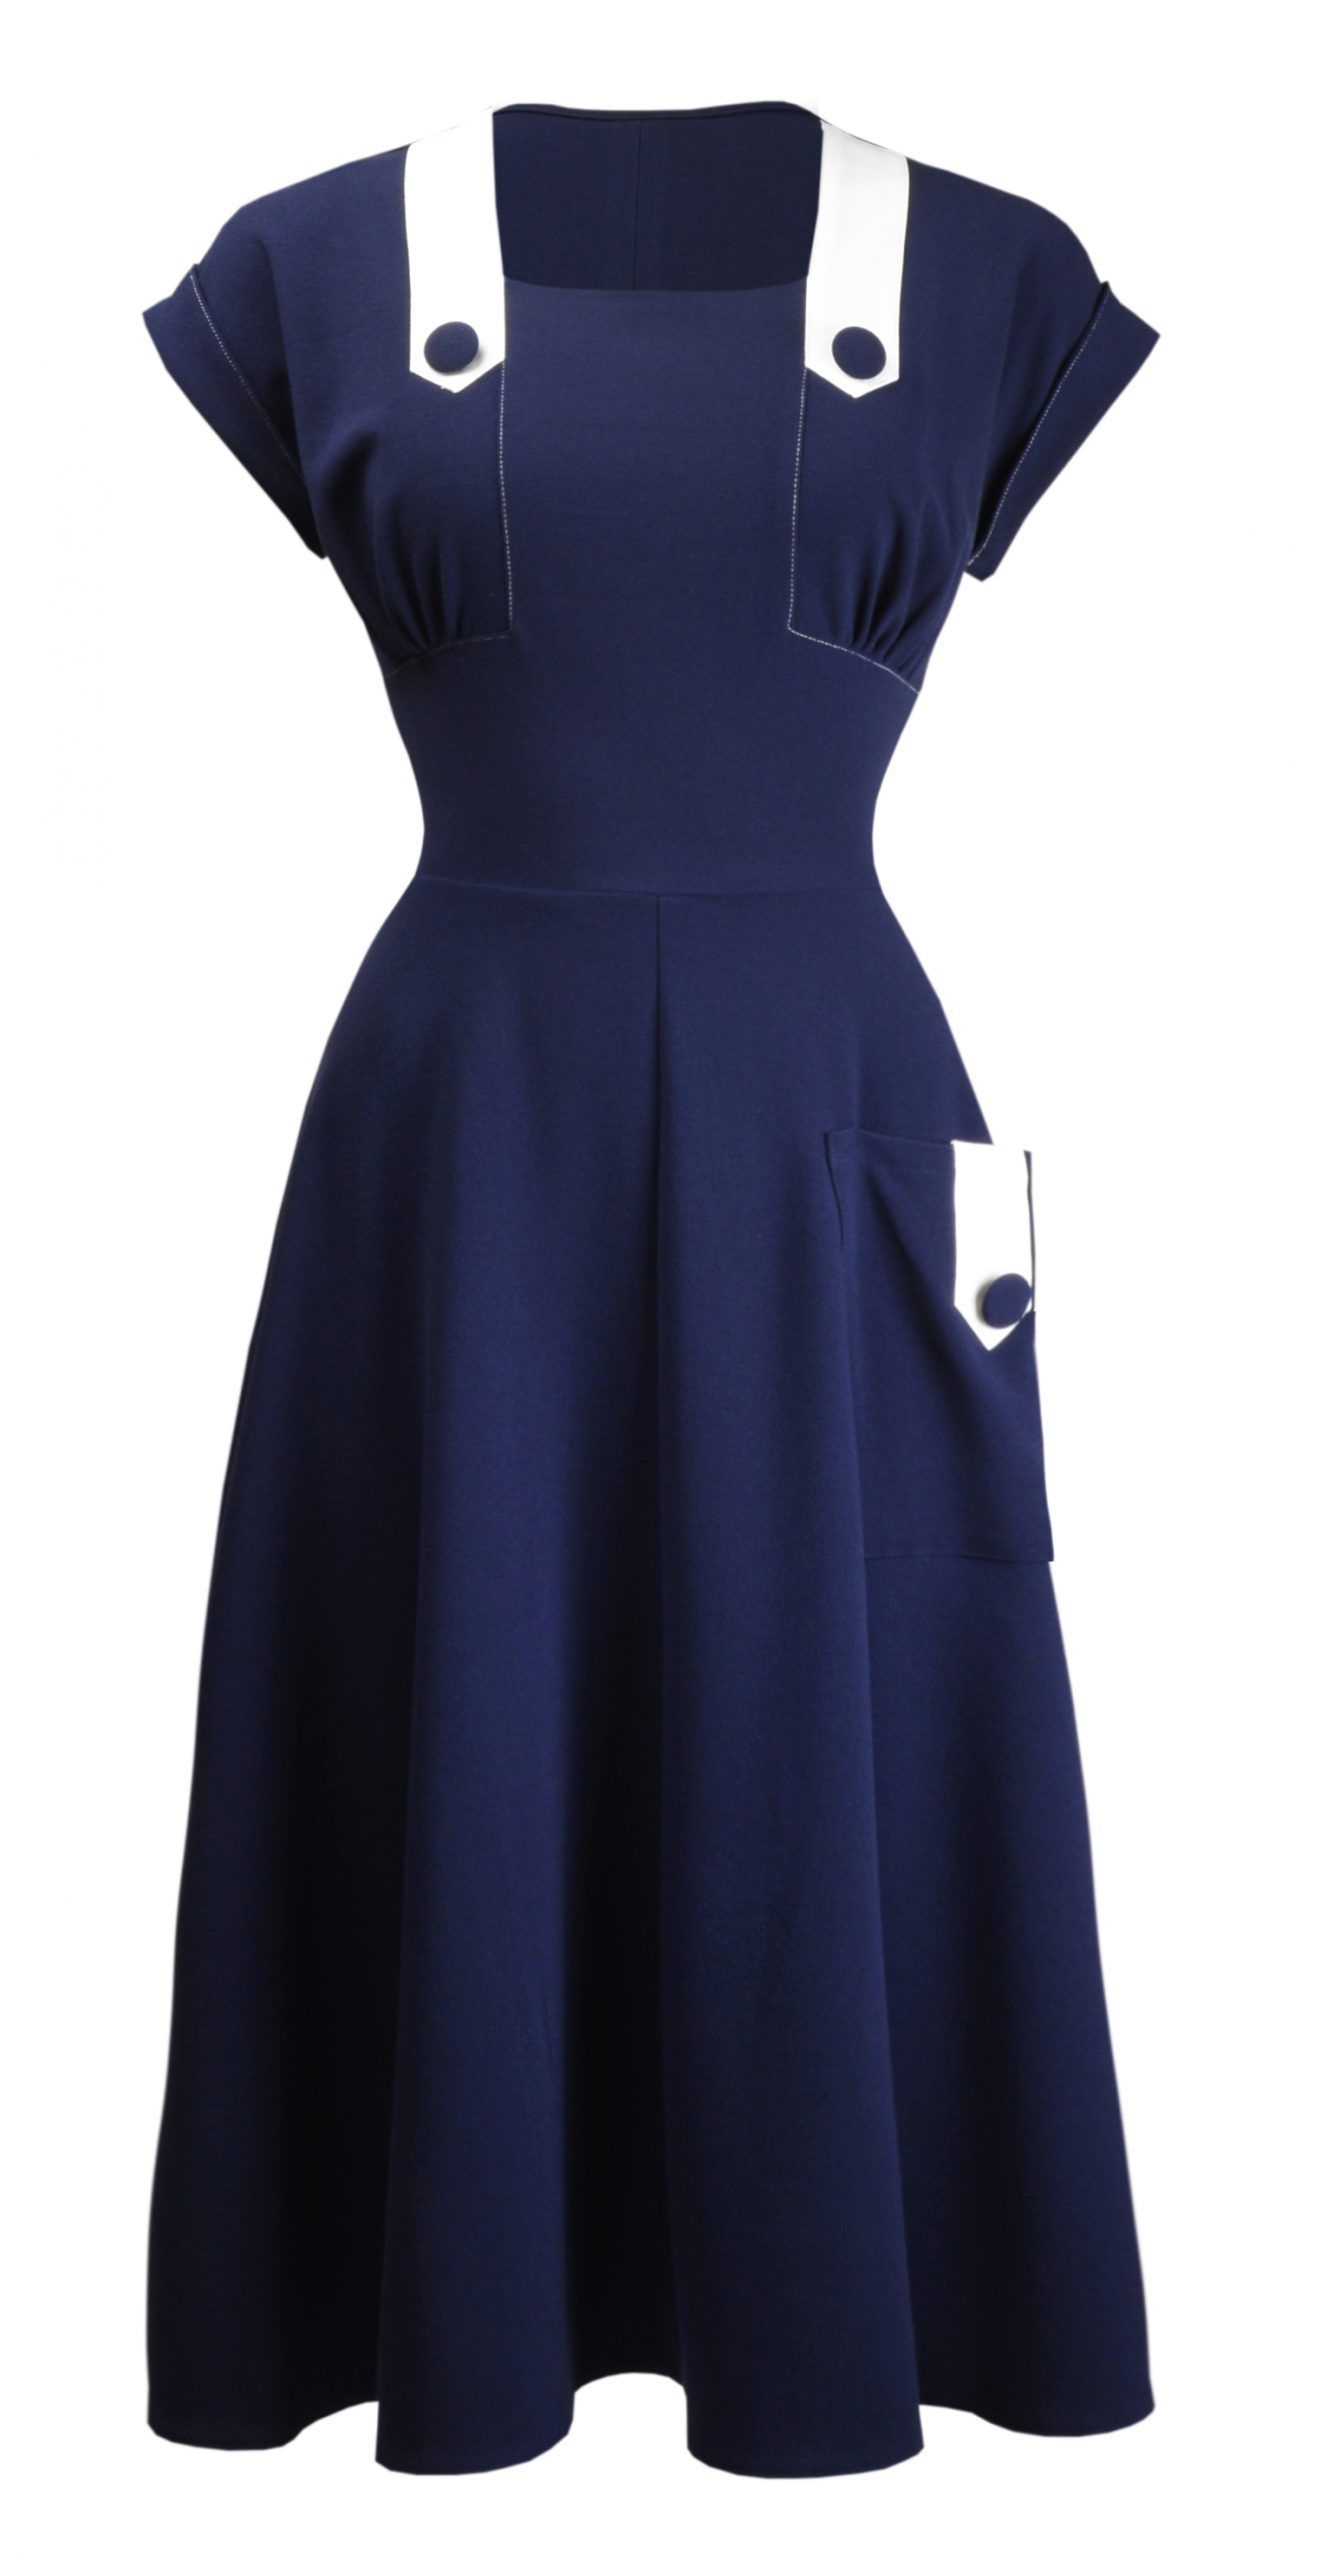 1950 S Doris Day Dress By The House Of Foxy In 2020 Day Dresses Dresses Clothes For Women